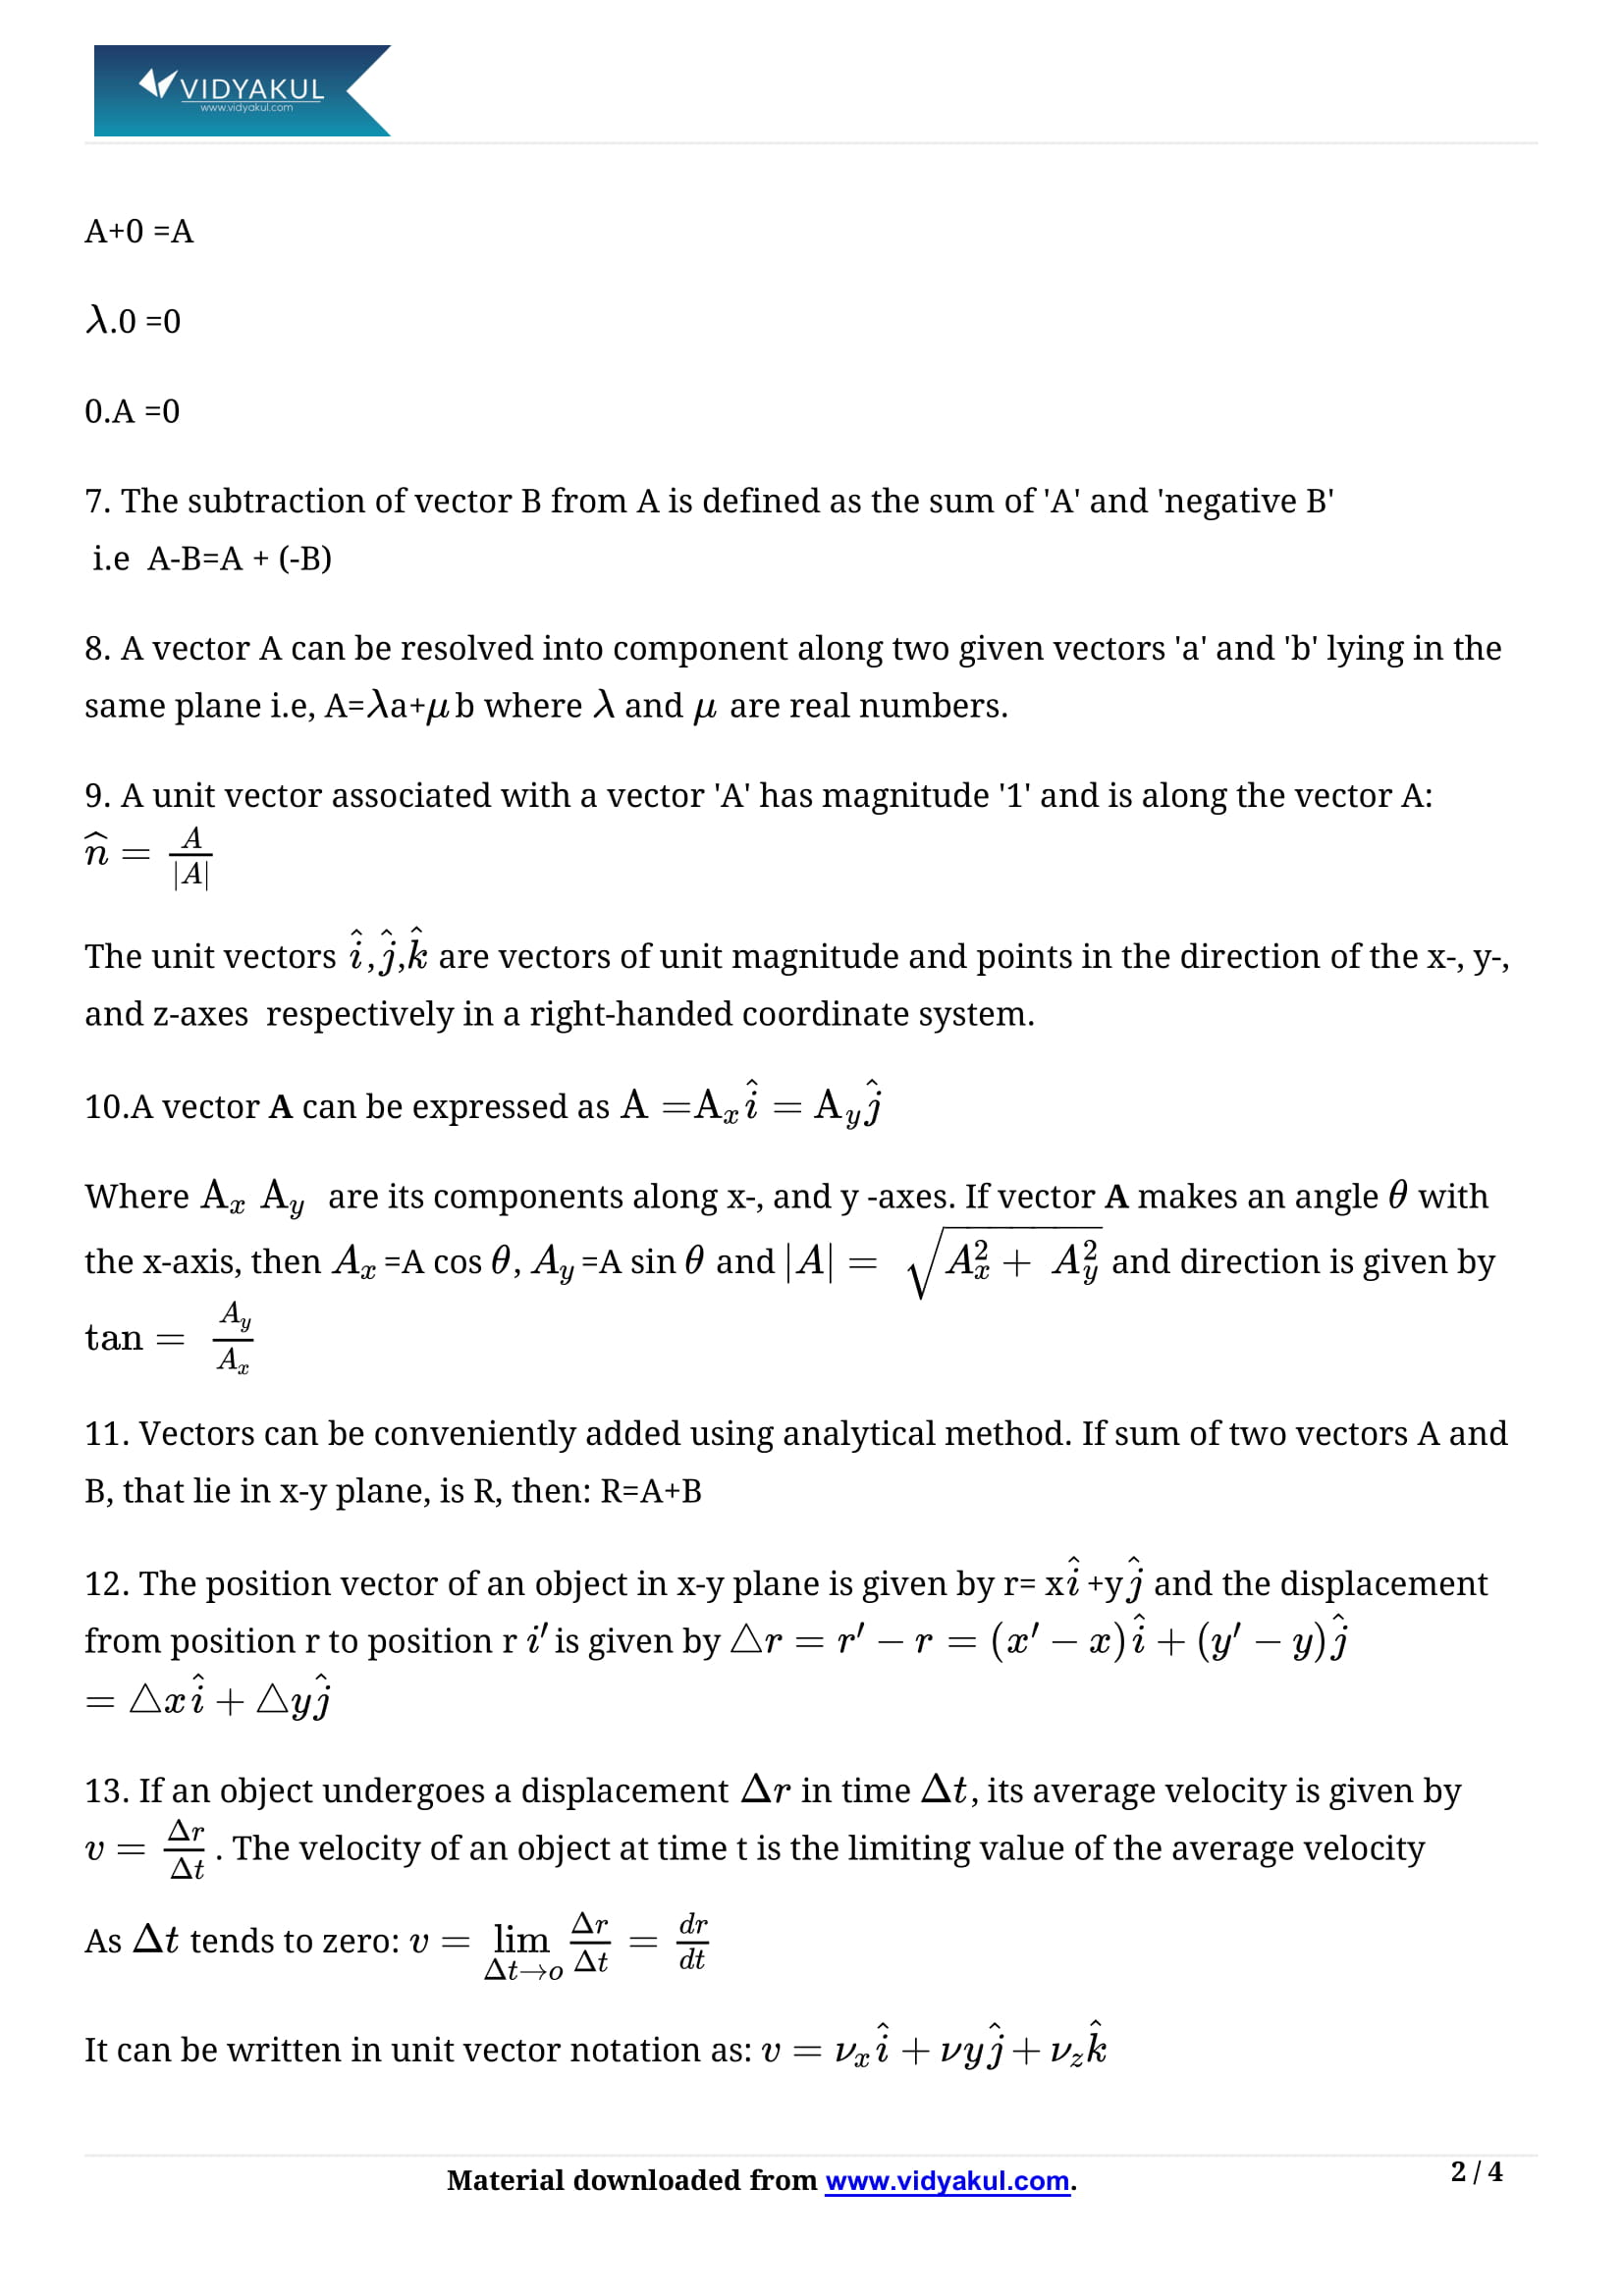 Class 11 Physics Chapter 4 Motion in a Plane Notes   Vidyakul